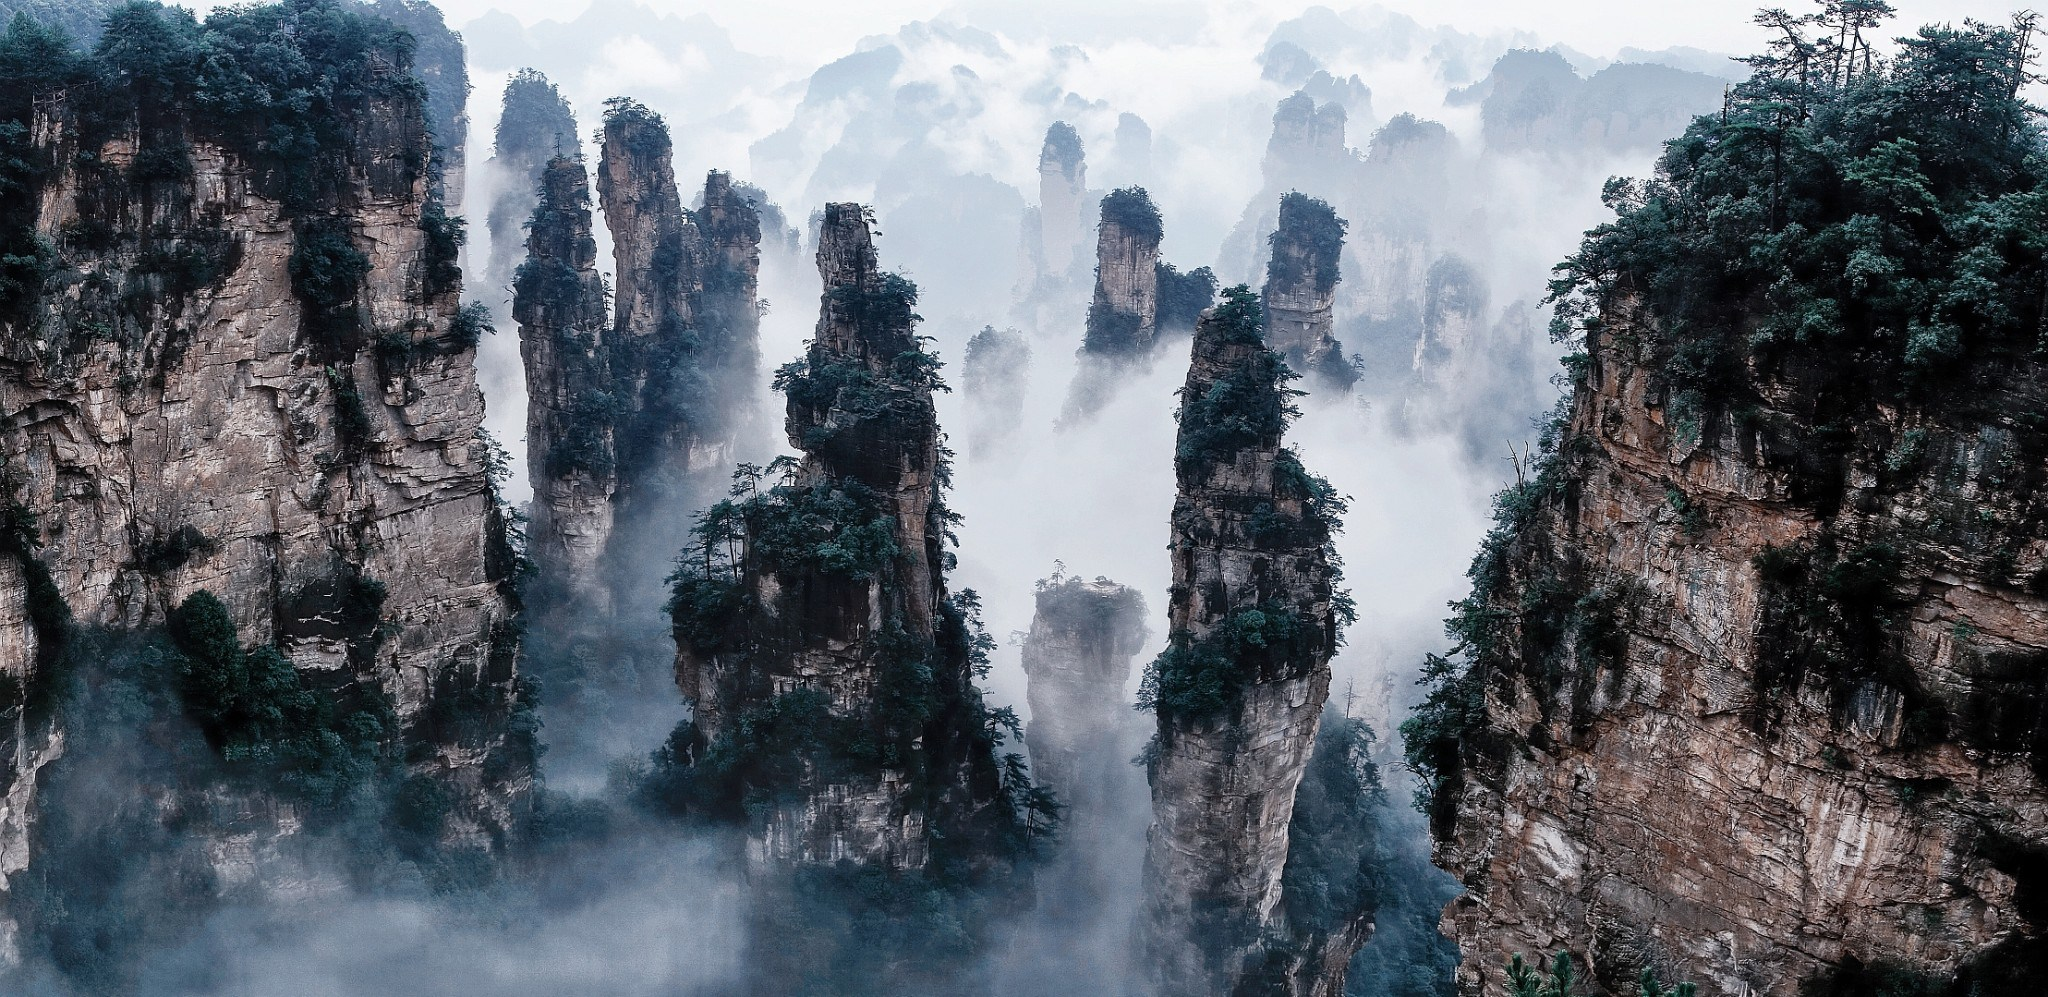 5 Tianzi Mountains in China